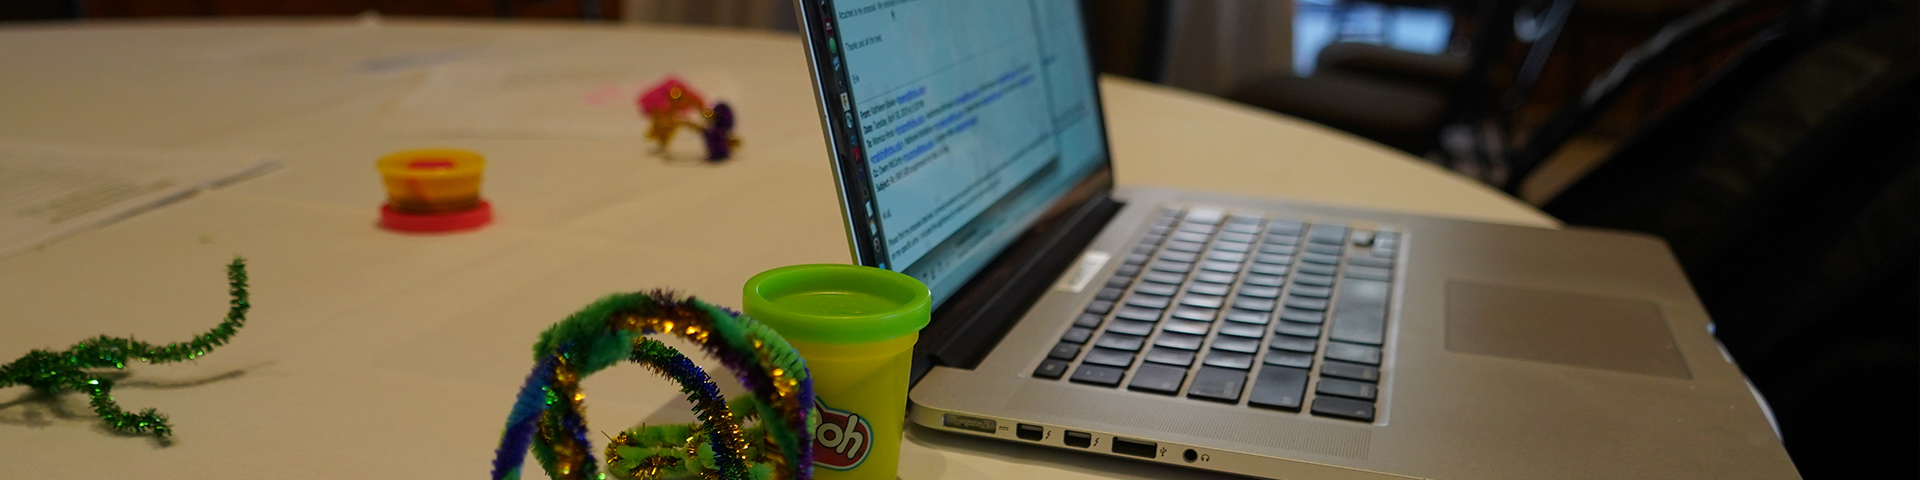 photo of a laptop screen on a table with pipe cleaners and play doh toys